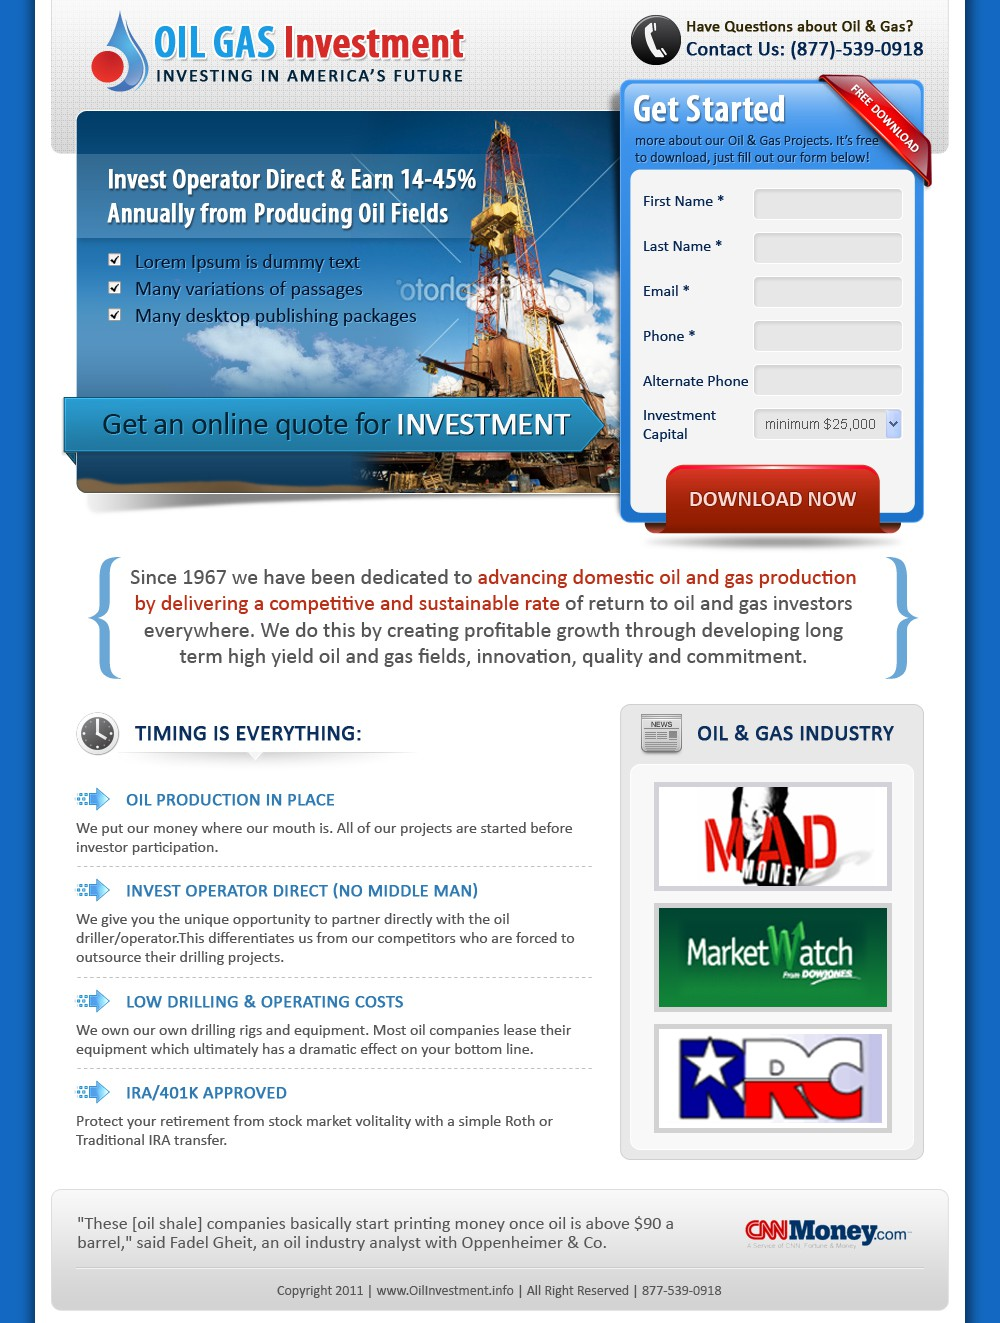 New website design wanted for Oil Gas Investment